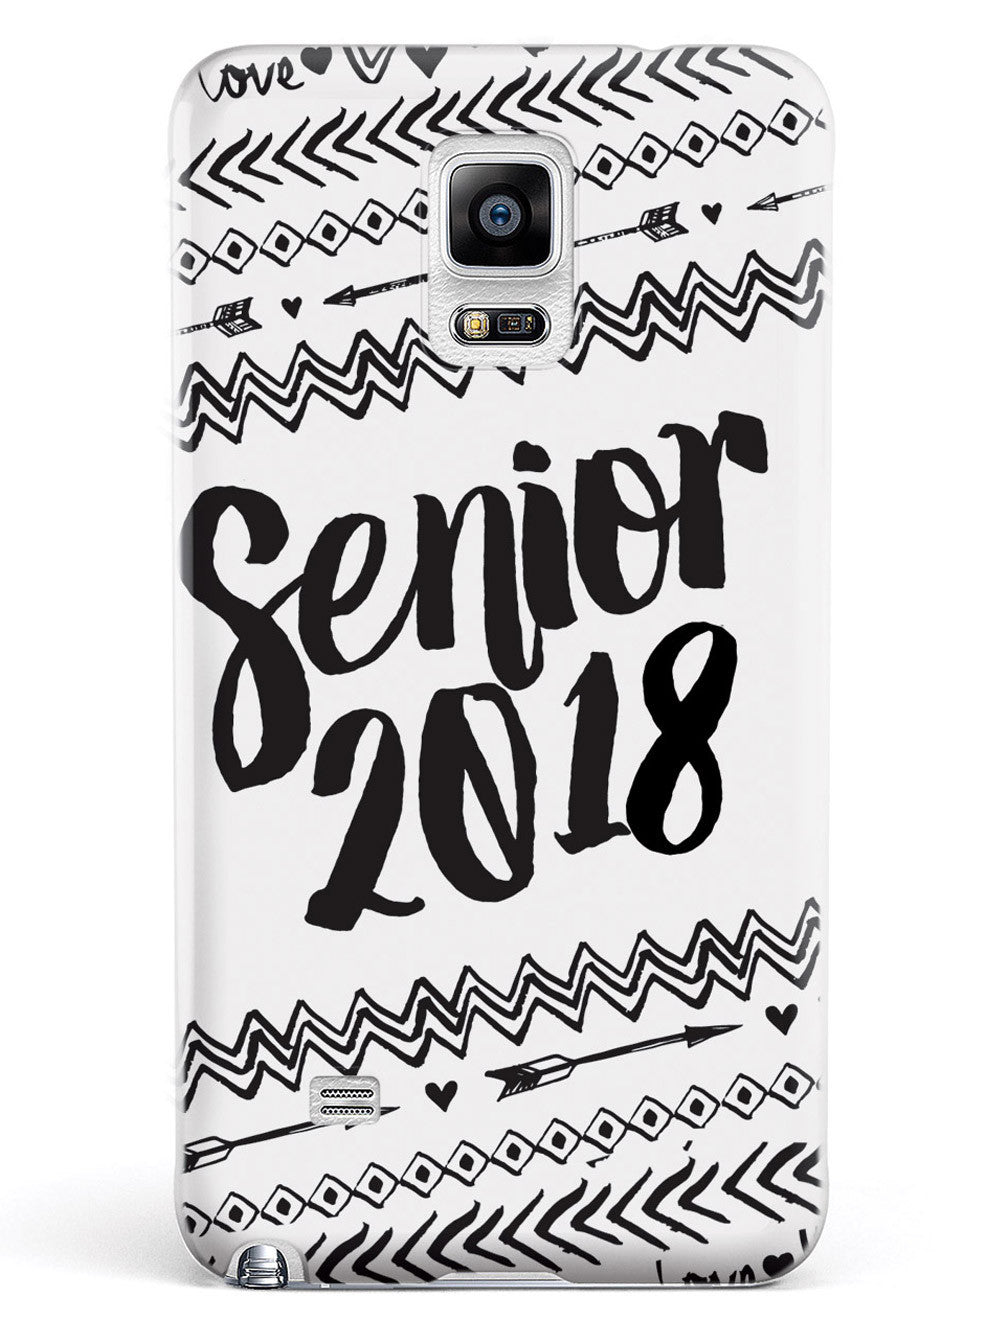 Senior 2018 - Black Case